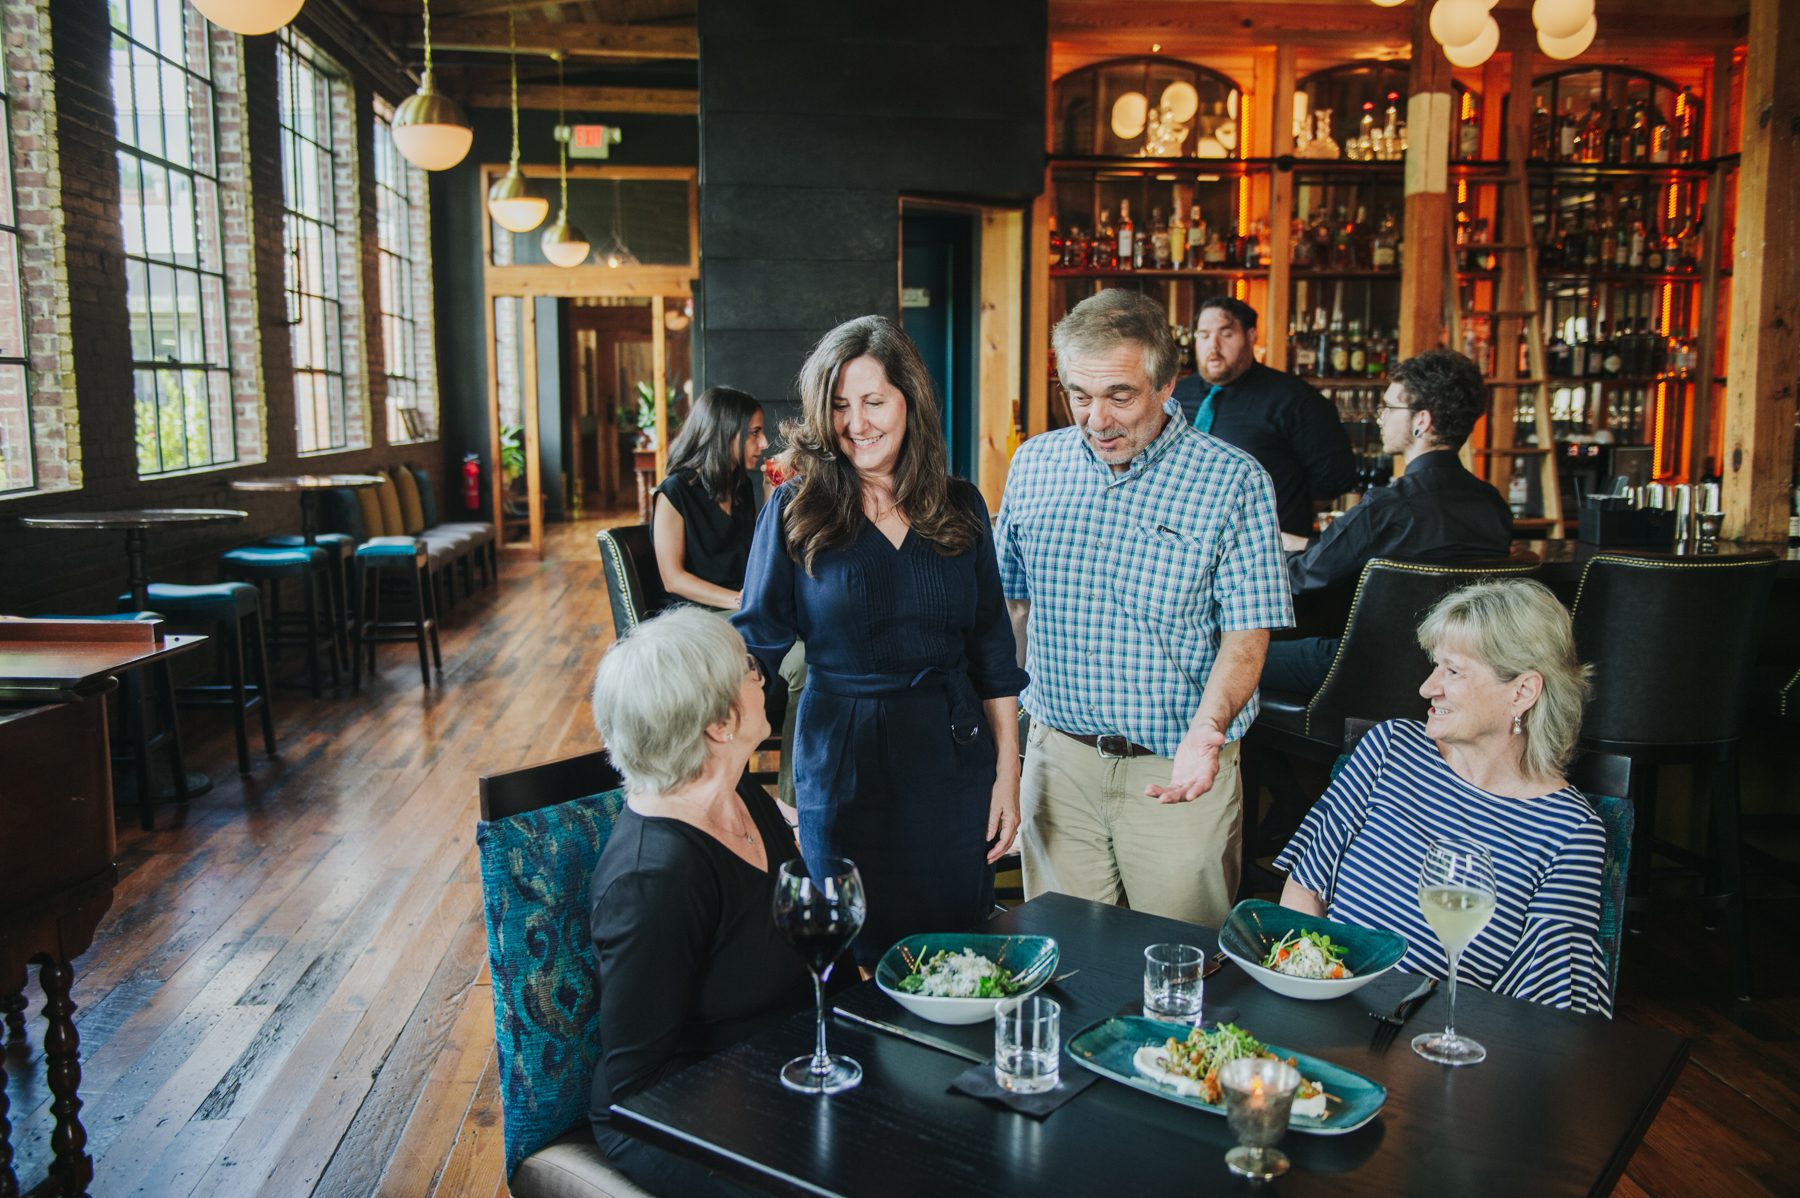 Greg Lewis and Maria Parker-Lewis, owners of The Sycamore at Chatham Mills who saw the pandemic impact their opening plans, stand and talk to customers.